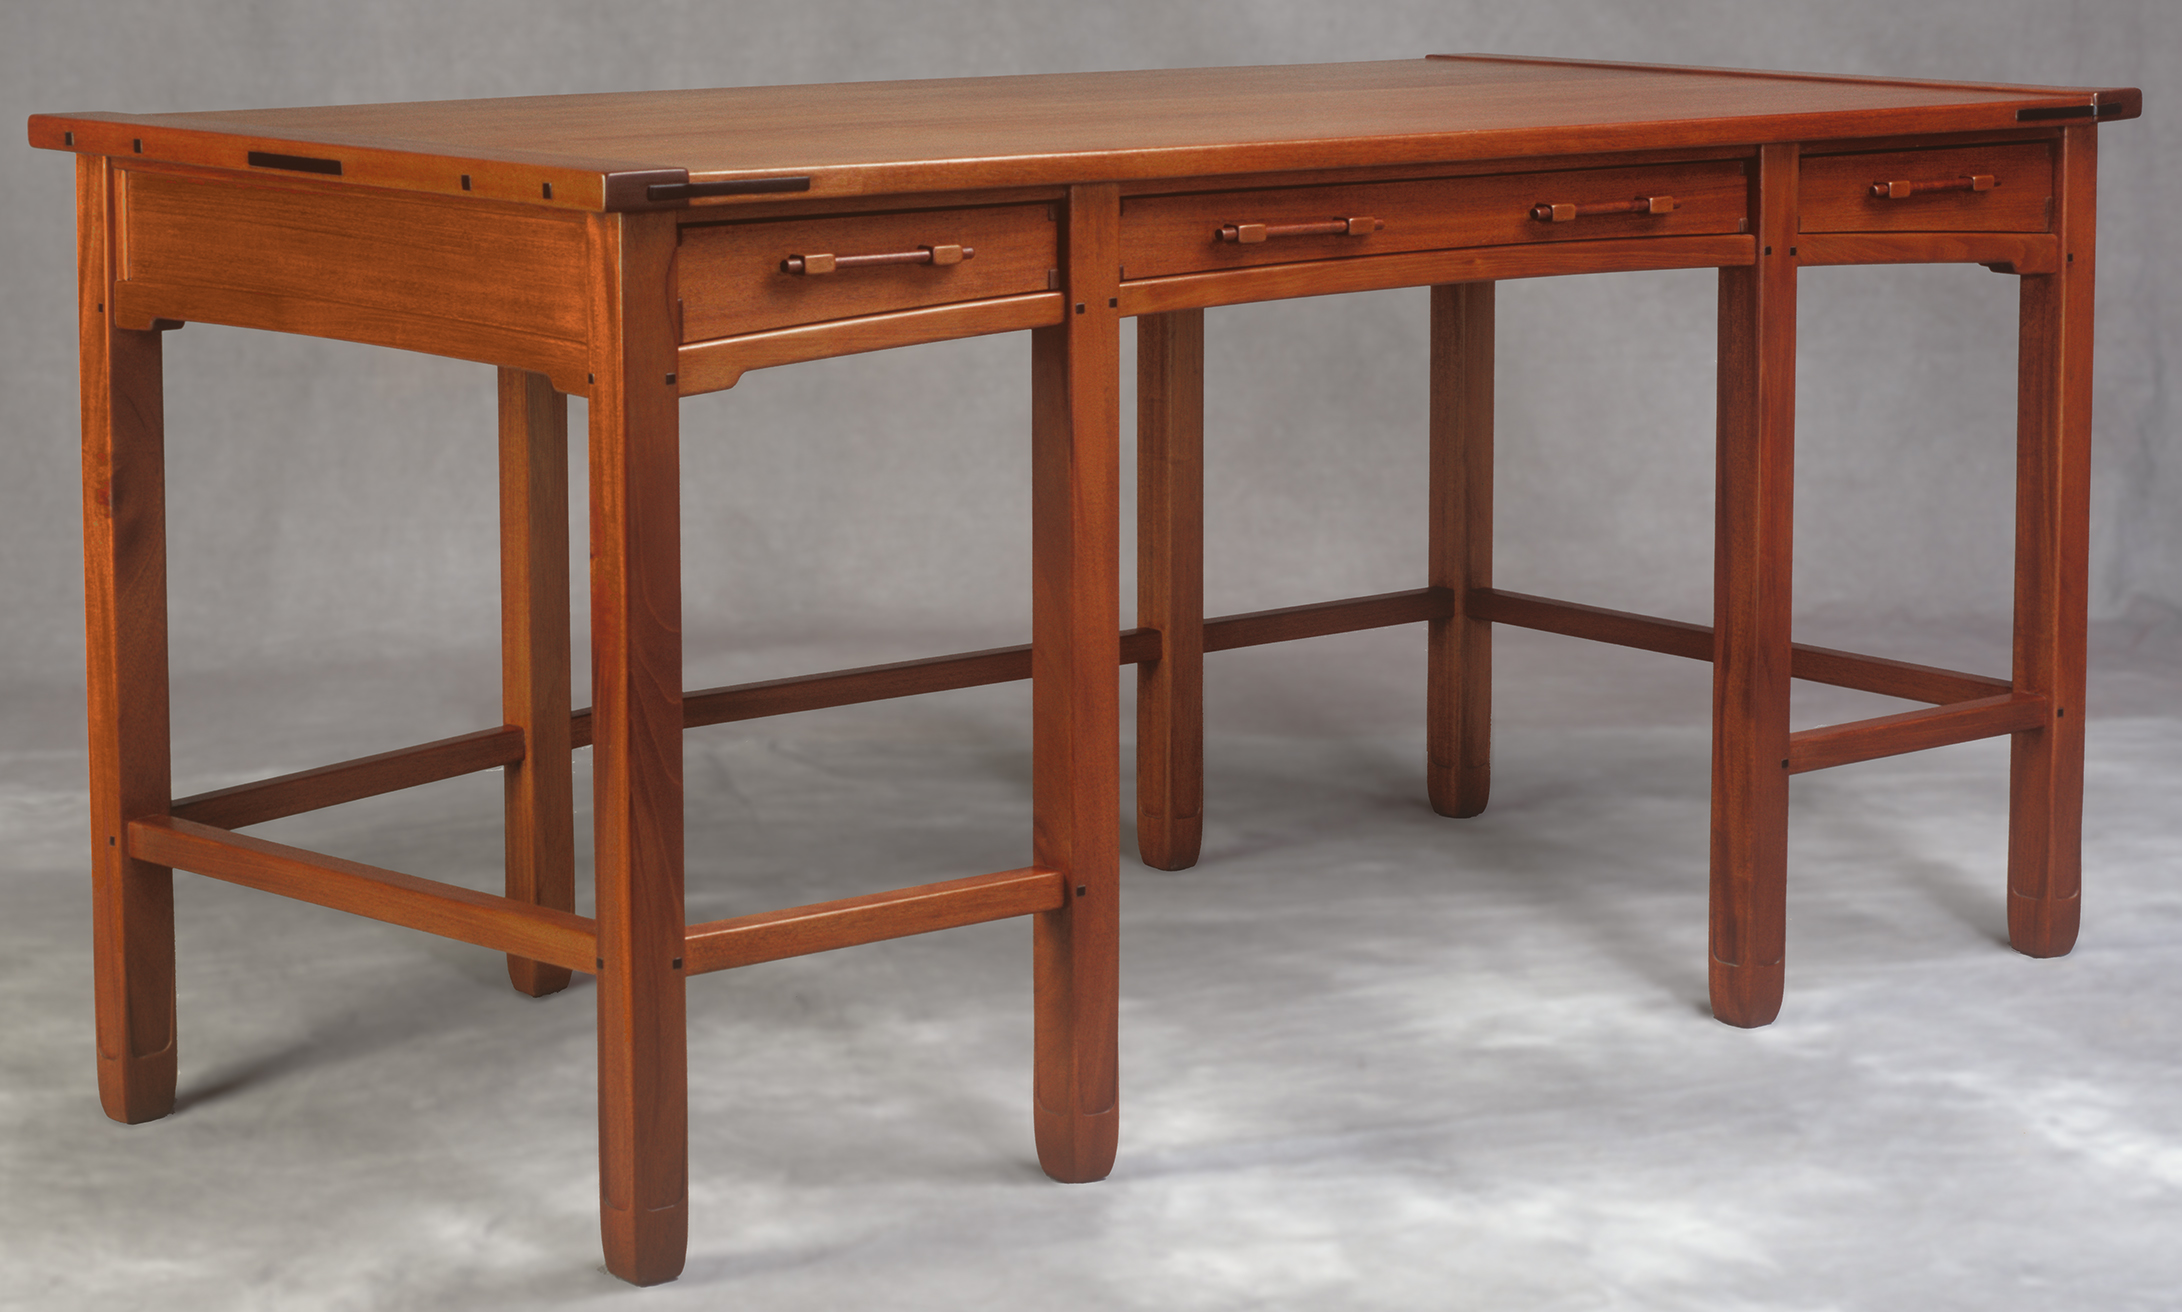 Aurora Table Desk by Darrell Peart in the style of Greene and Greene